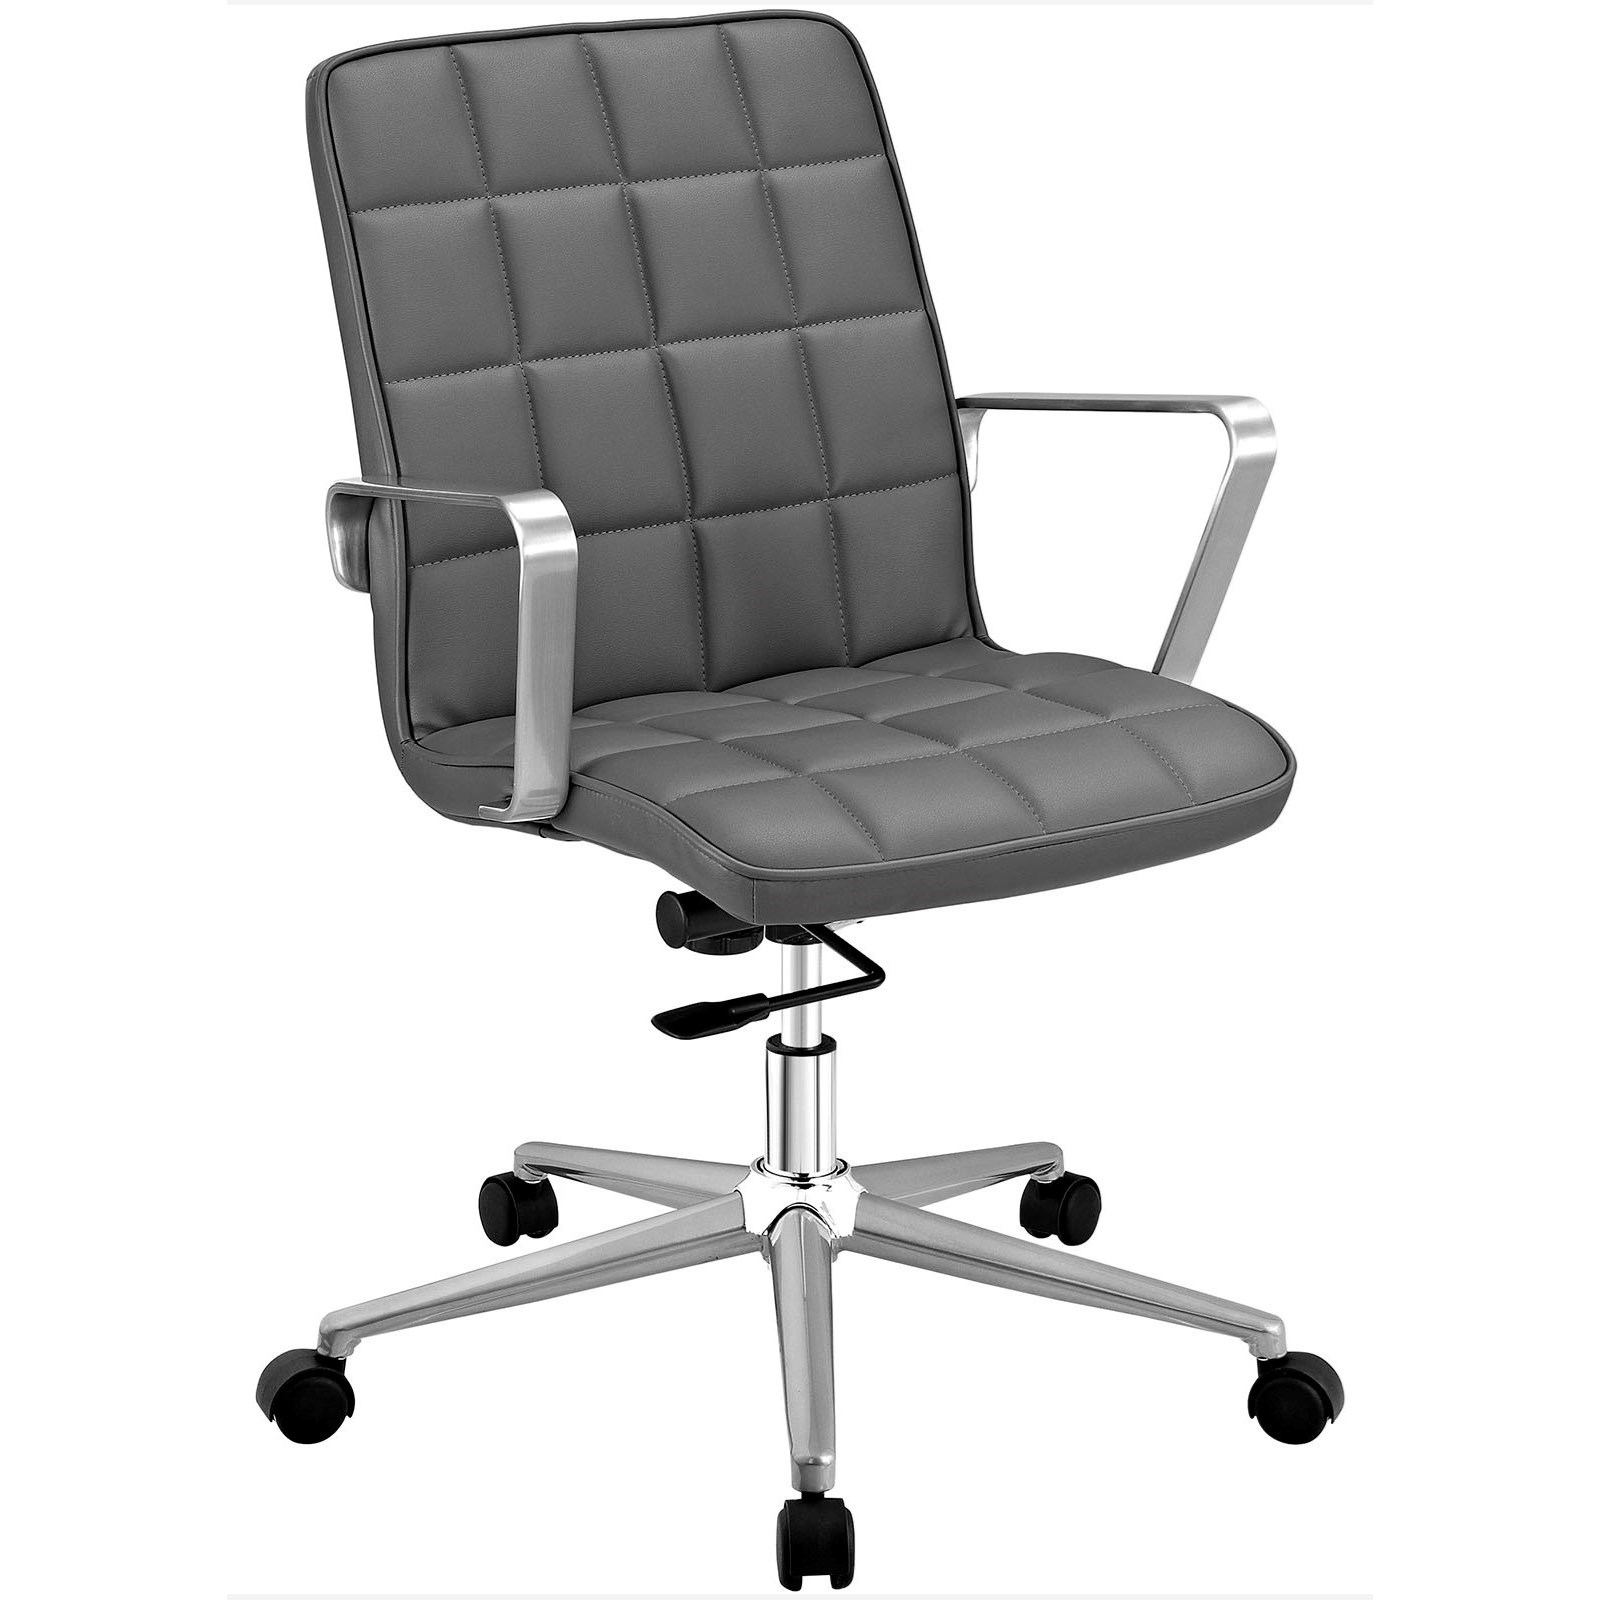 Tile Office Chair by Modway at Value City Furniture